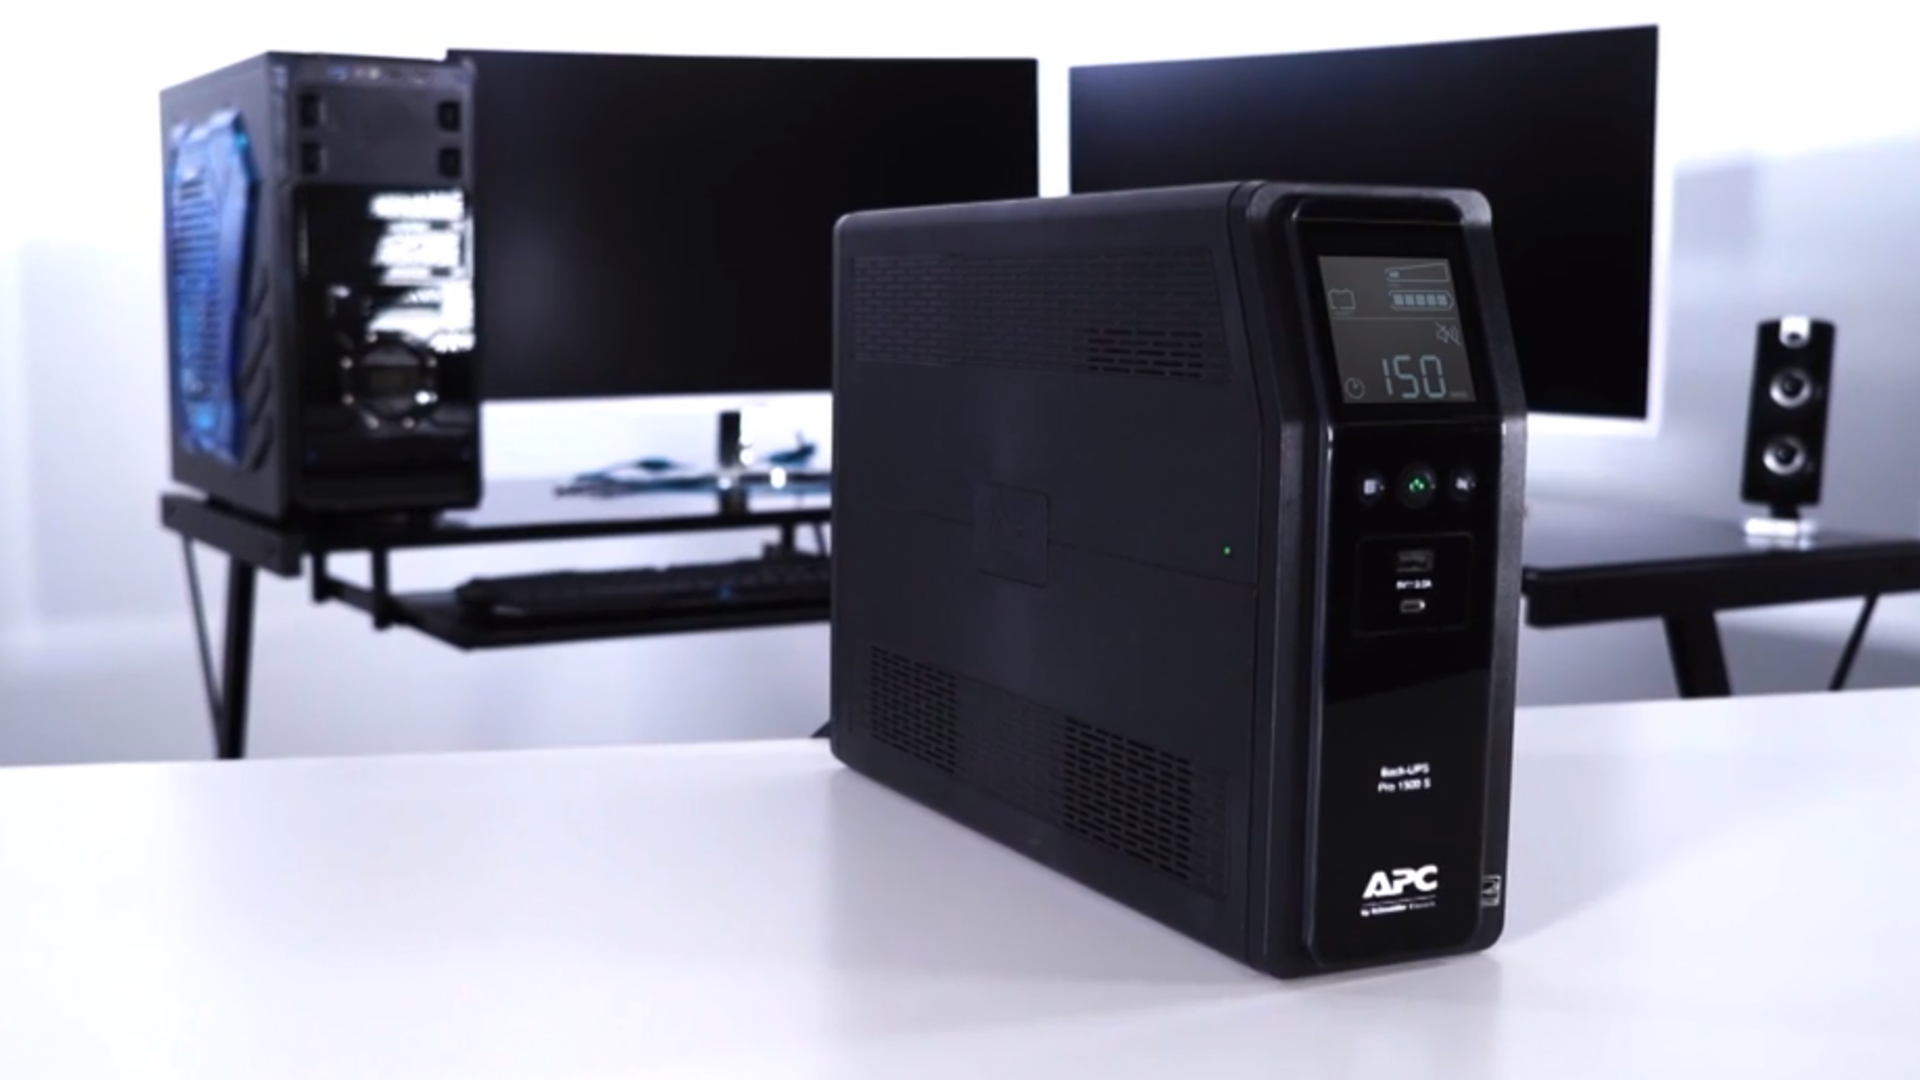 Apc Back Ups Pro Br 810 Watt 1350 Va Br1350ms Electronic Watchdog Kit Quality Electronics Store Kingston Ontario 101